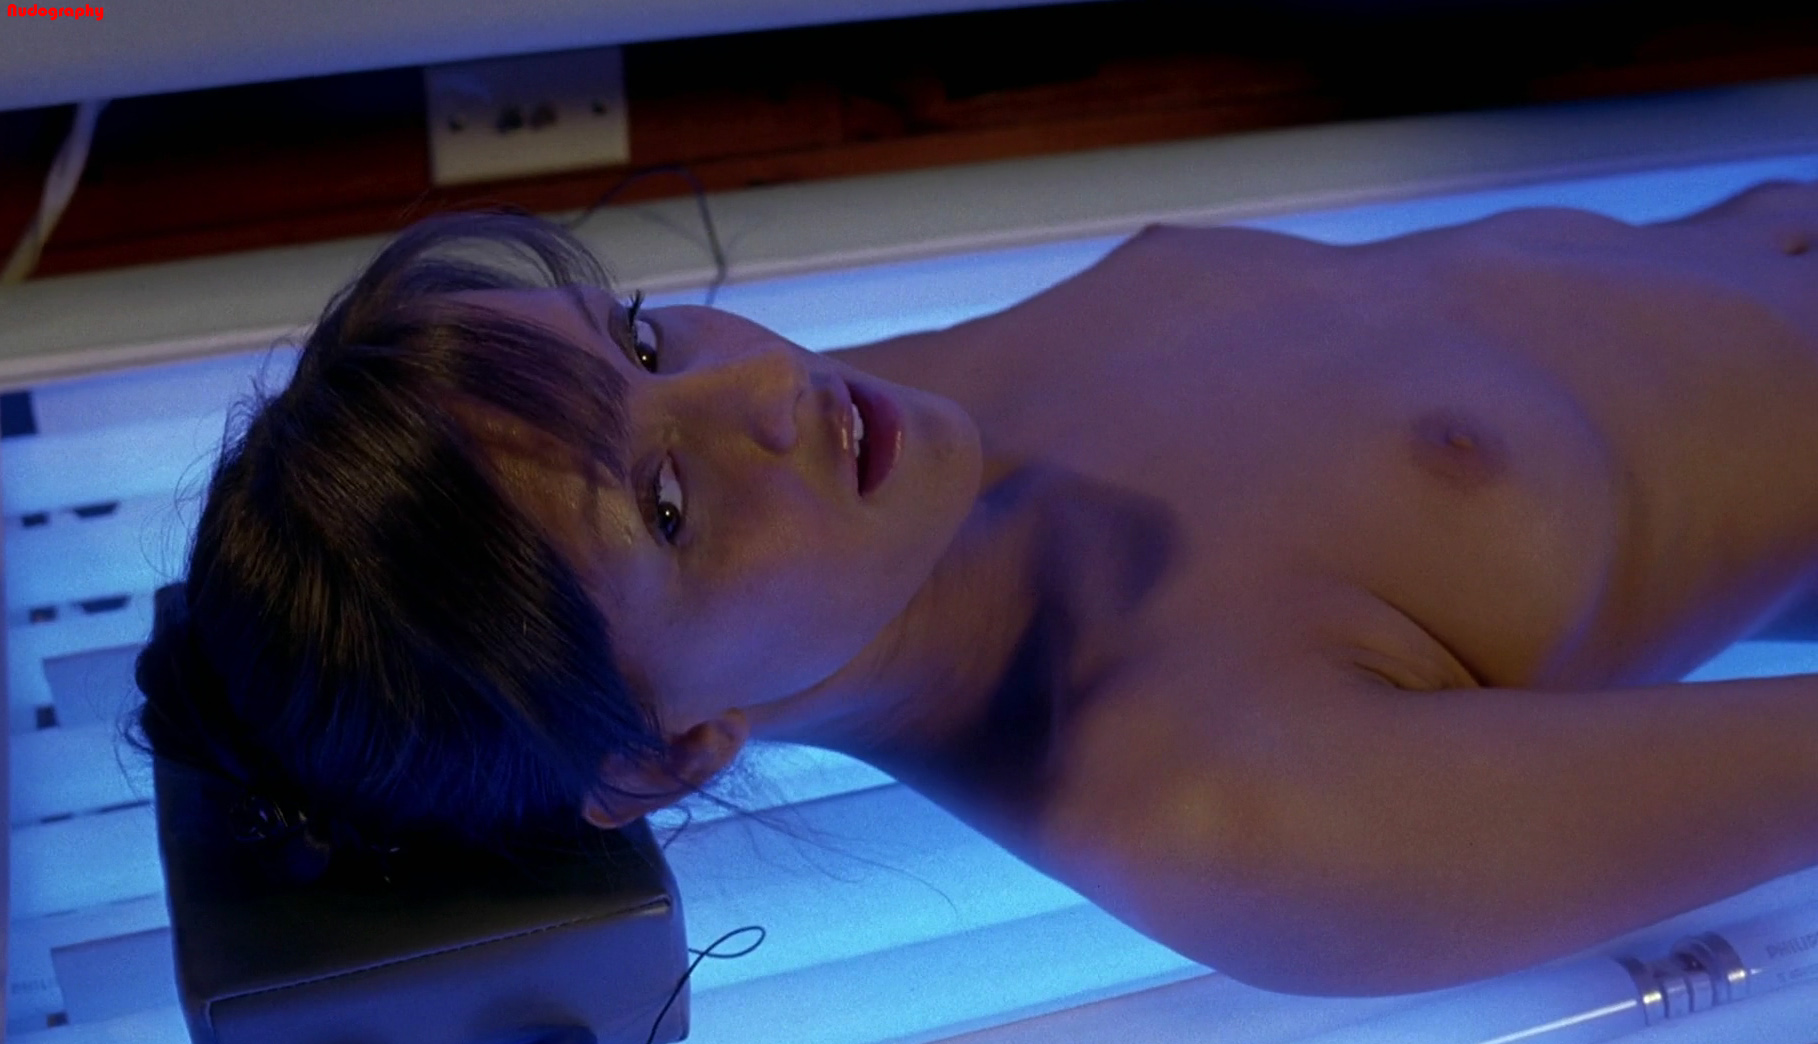 Nude final destination3 consider